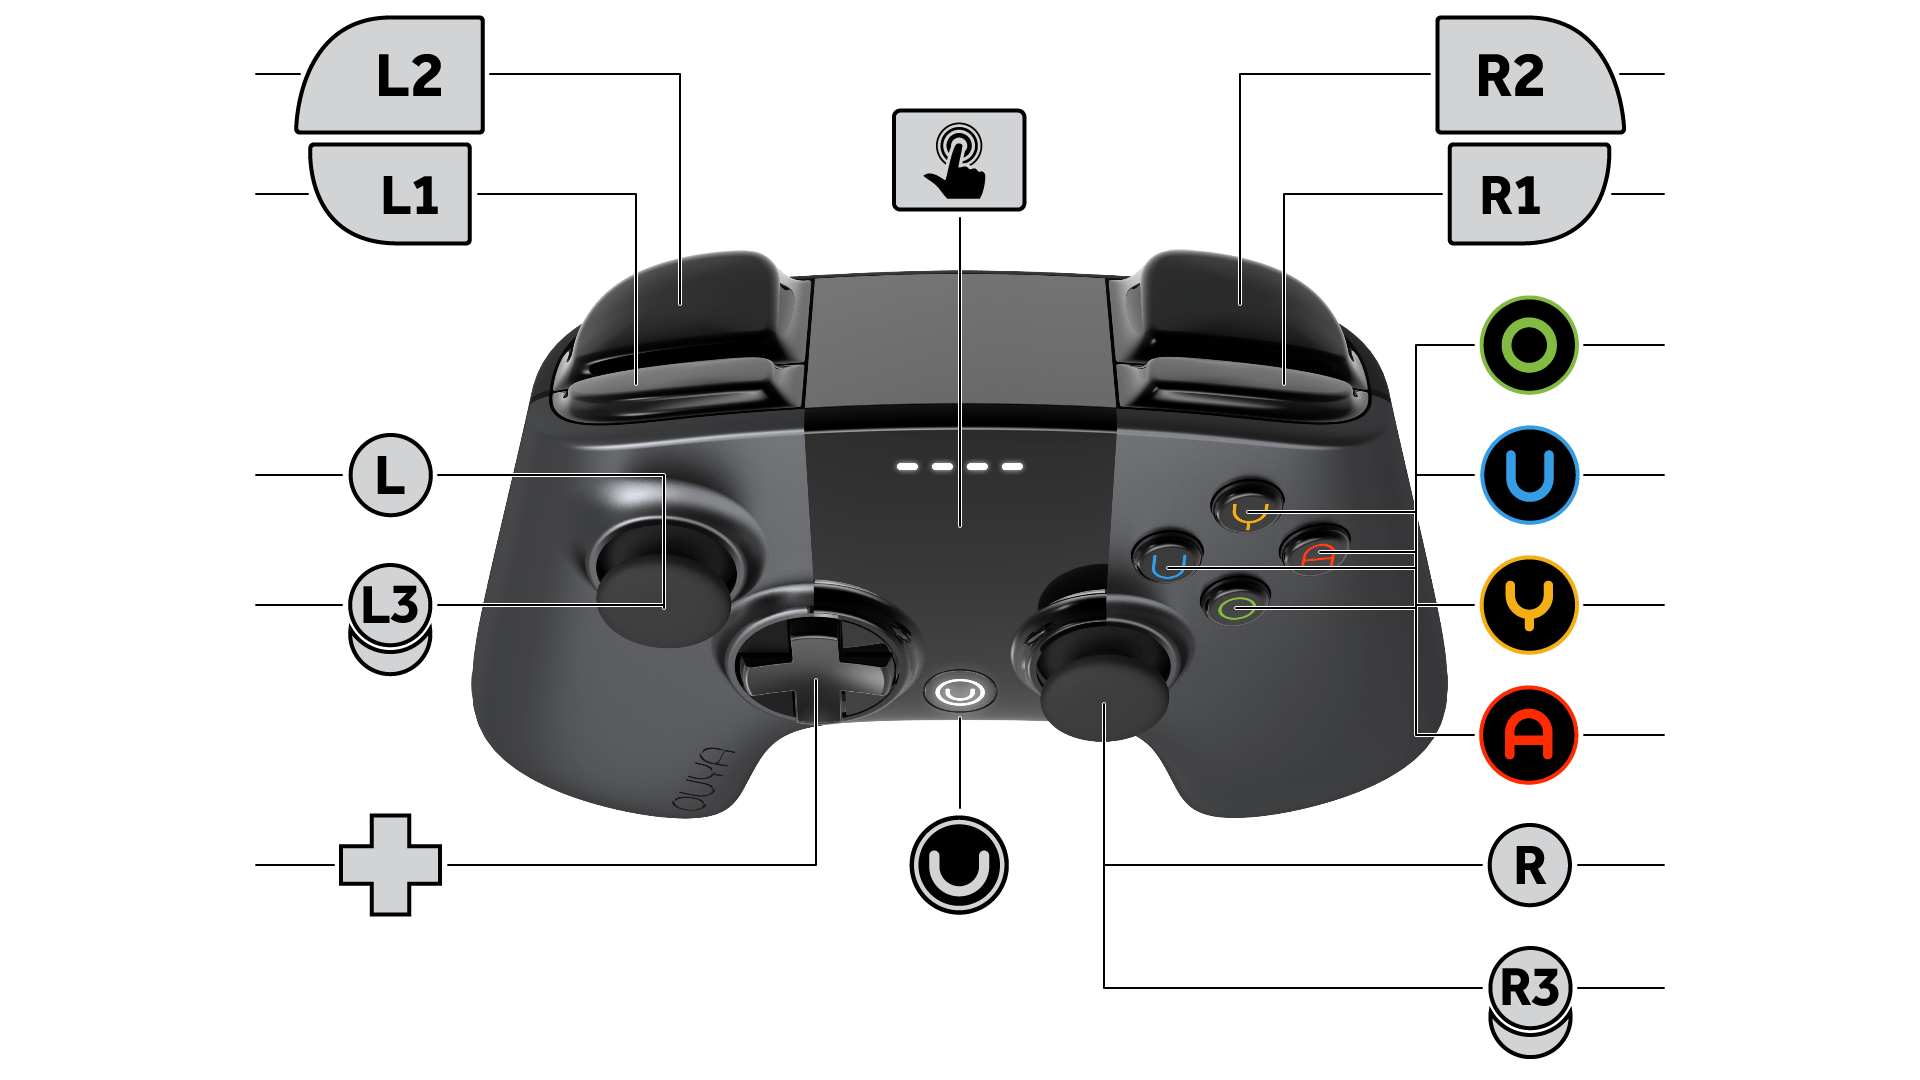 ps2 controller to usb wiring diagram 2005 nissan pathfinder bose audio schematic for playstation 2 get free